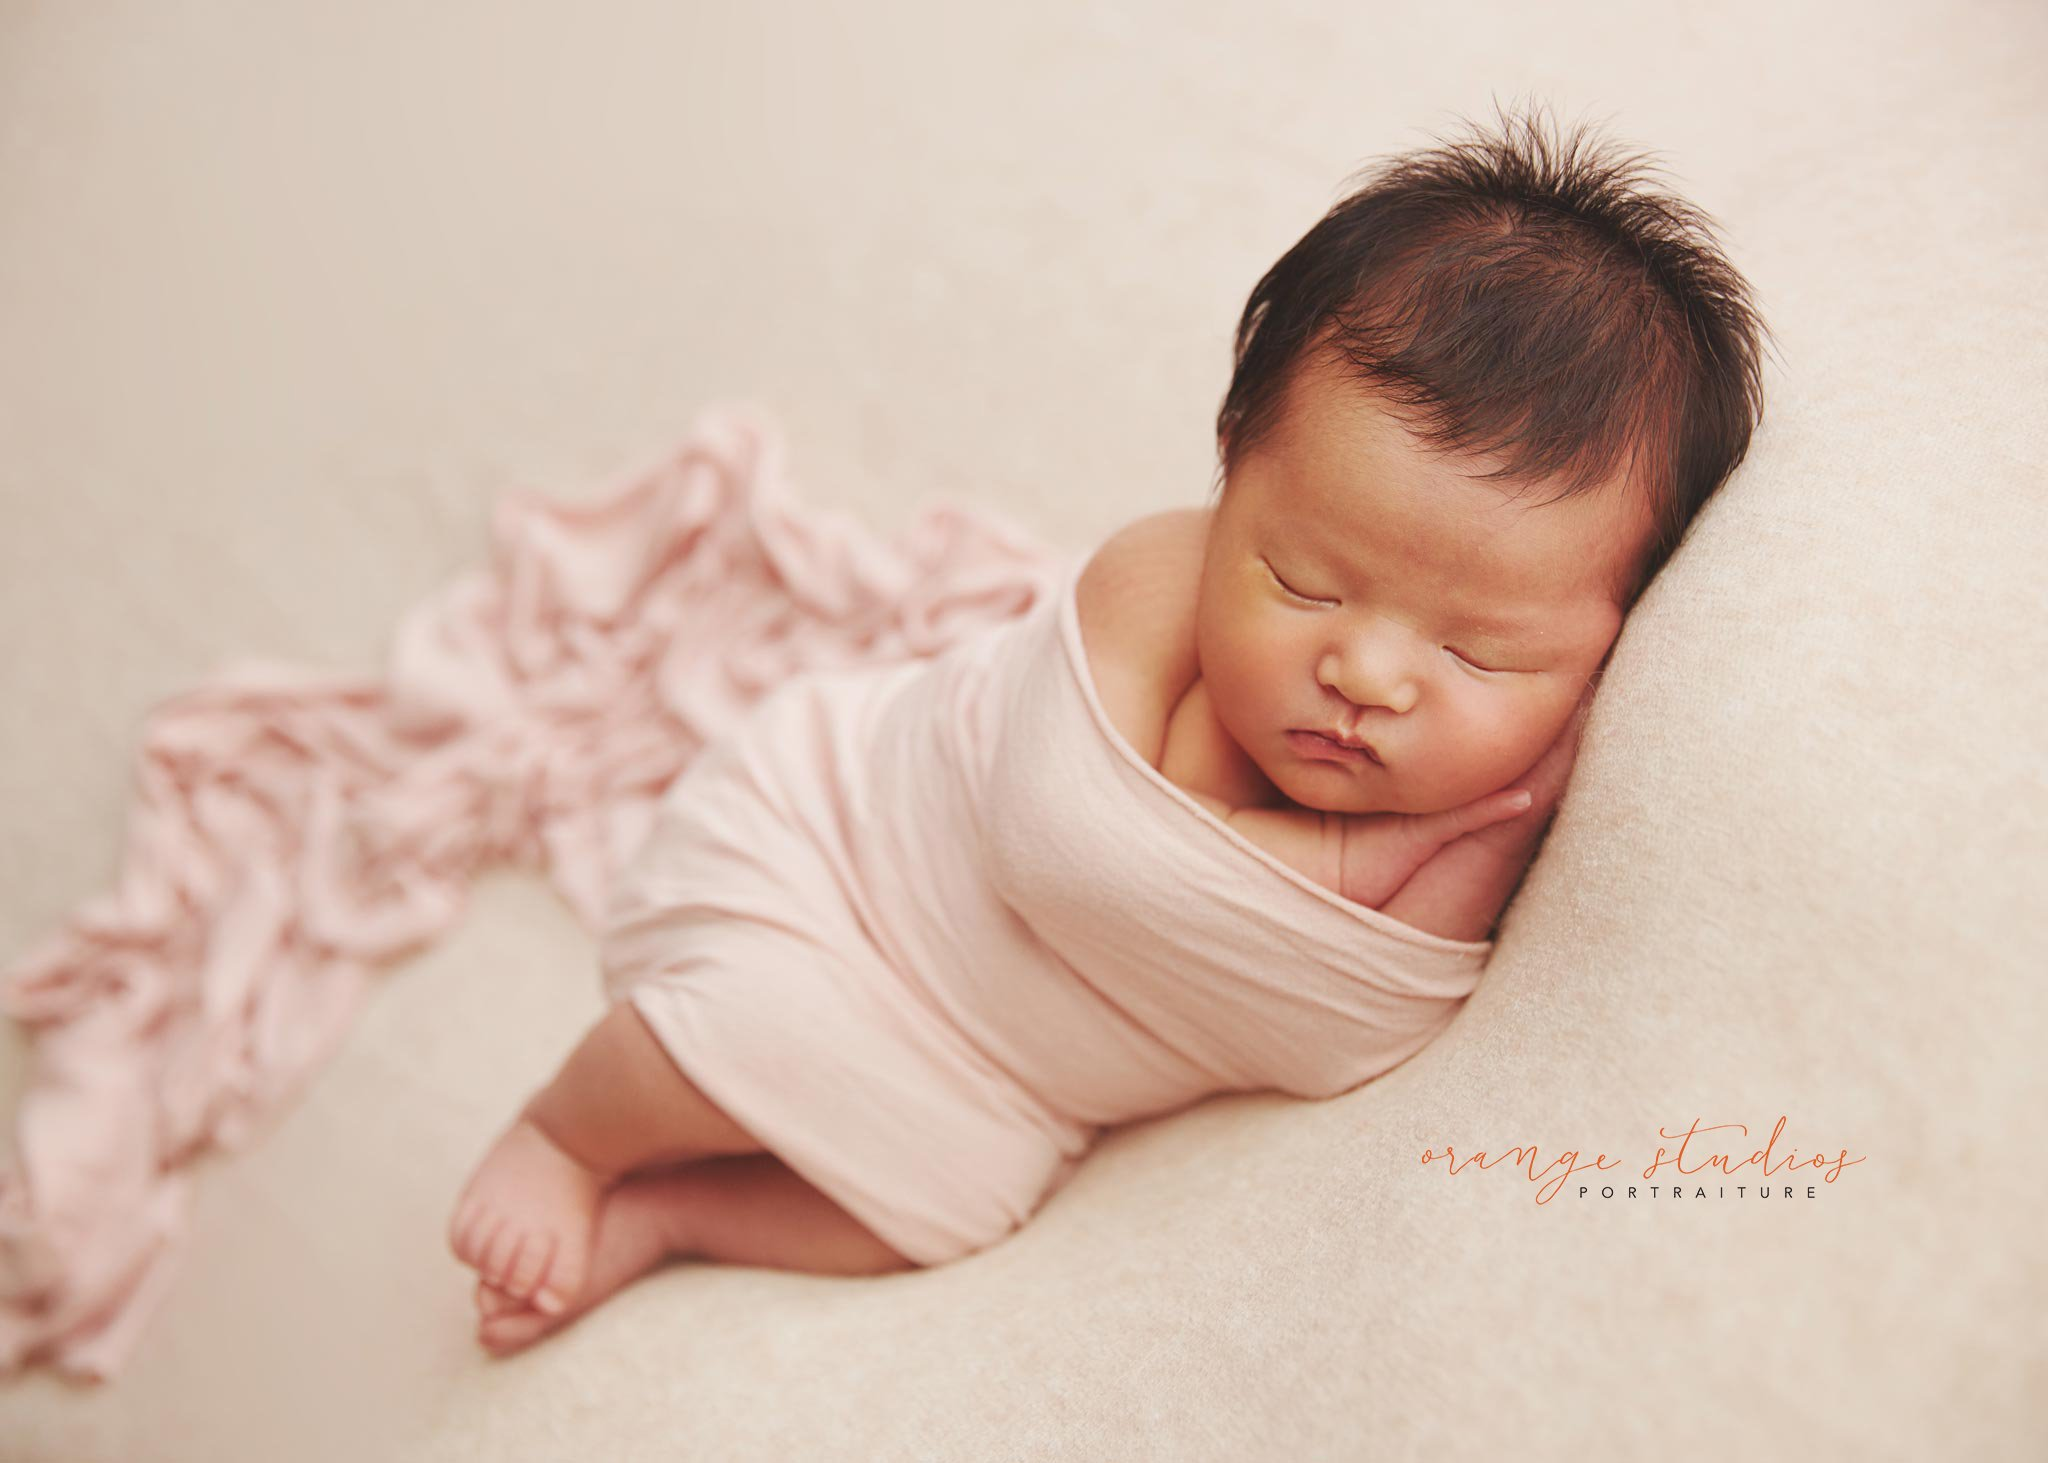 Baby celeste at 13 days young newborn photography